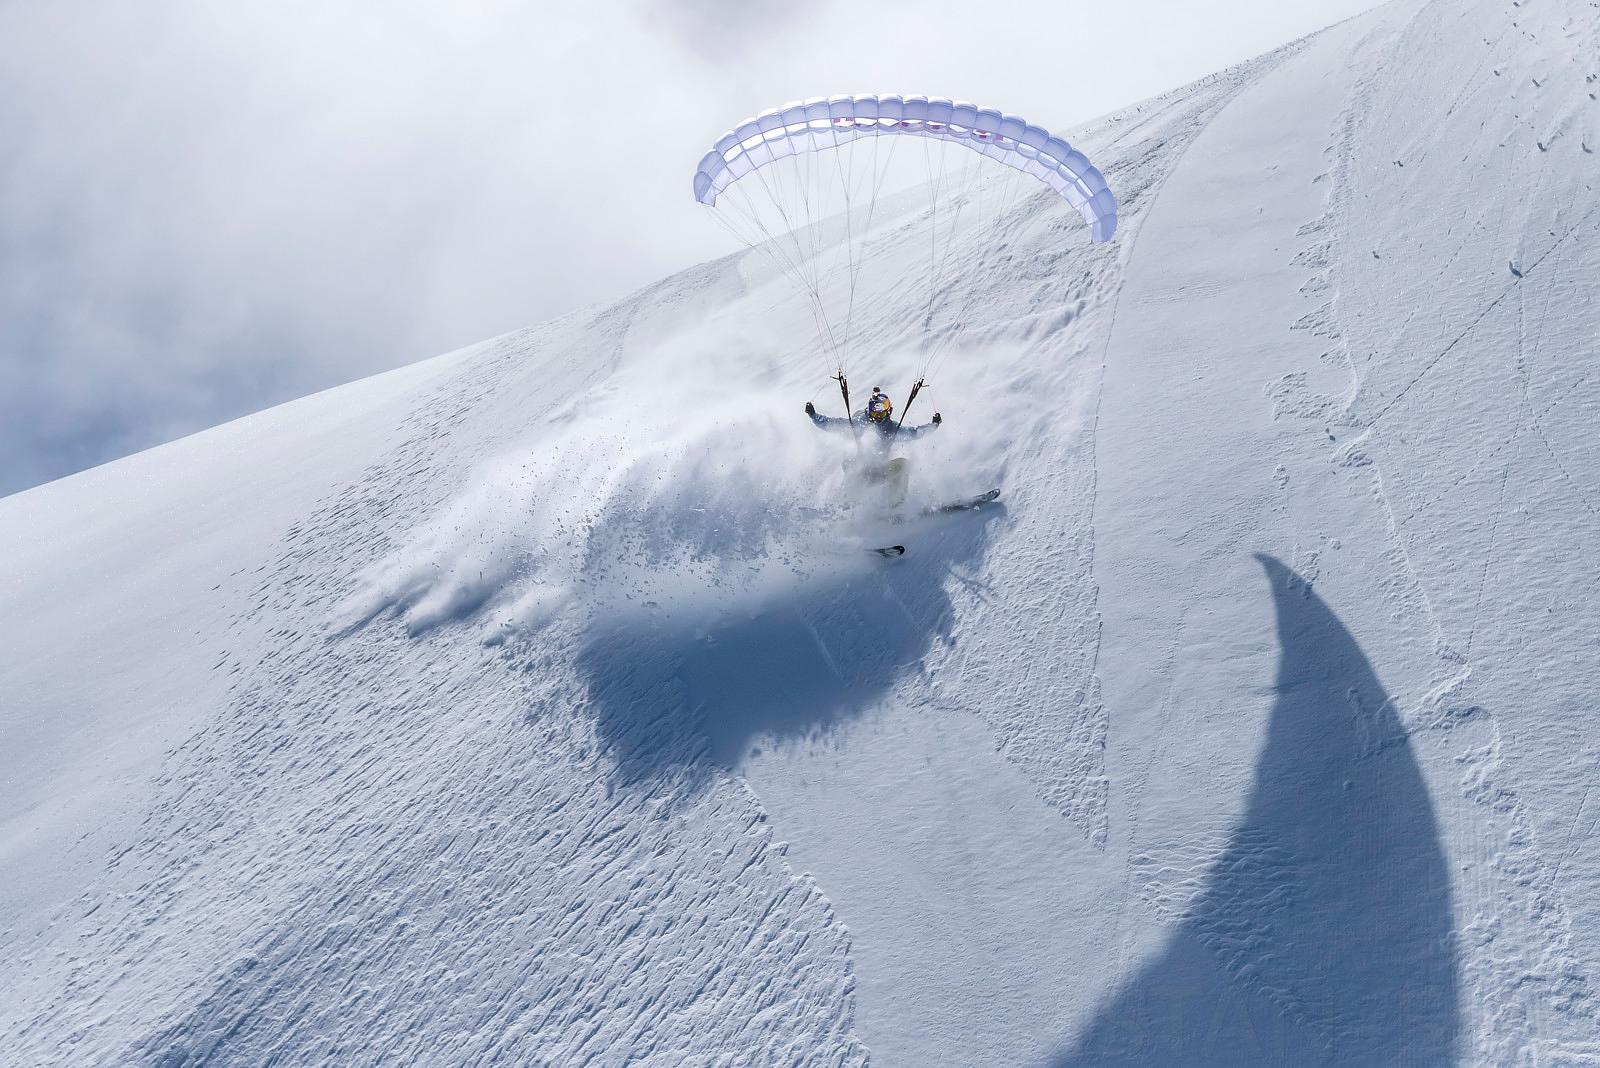 Speedriding the North Face of Aiguille du midi with Valentin Delluc